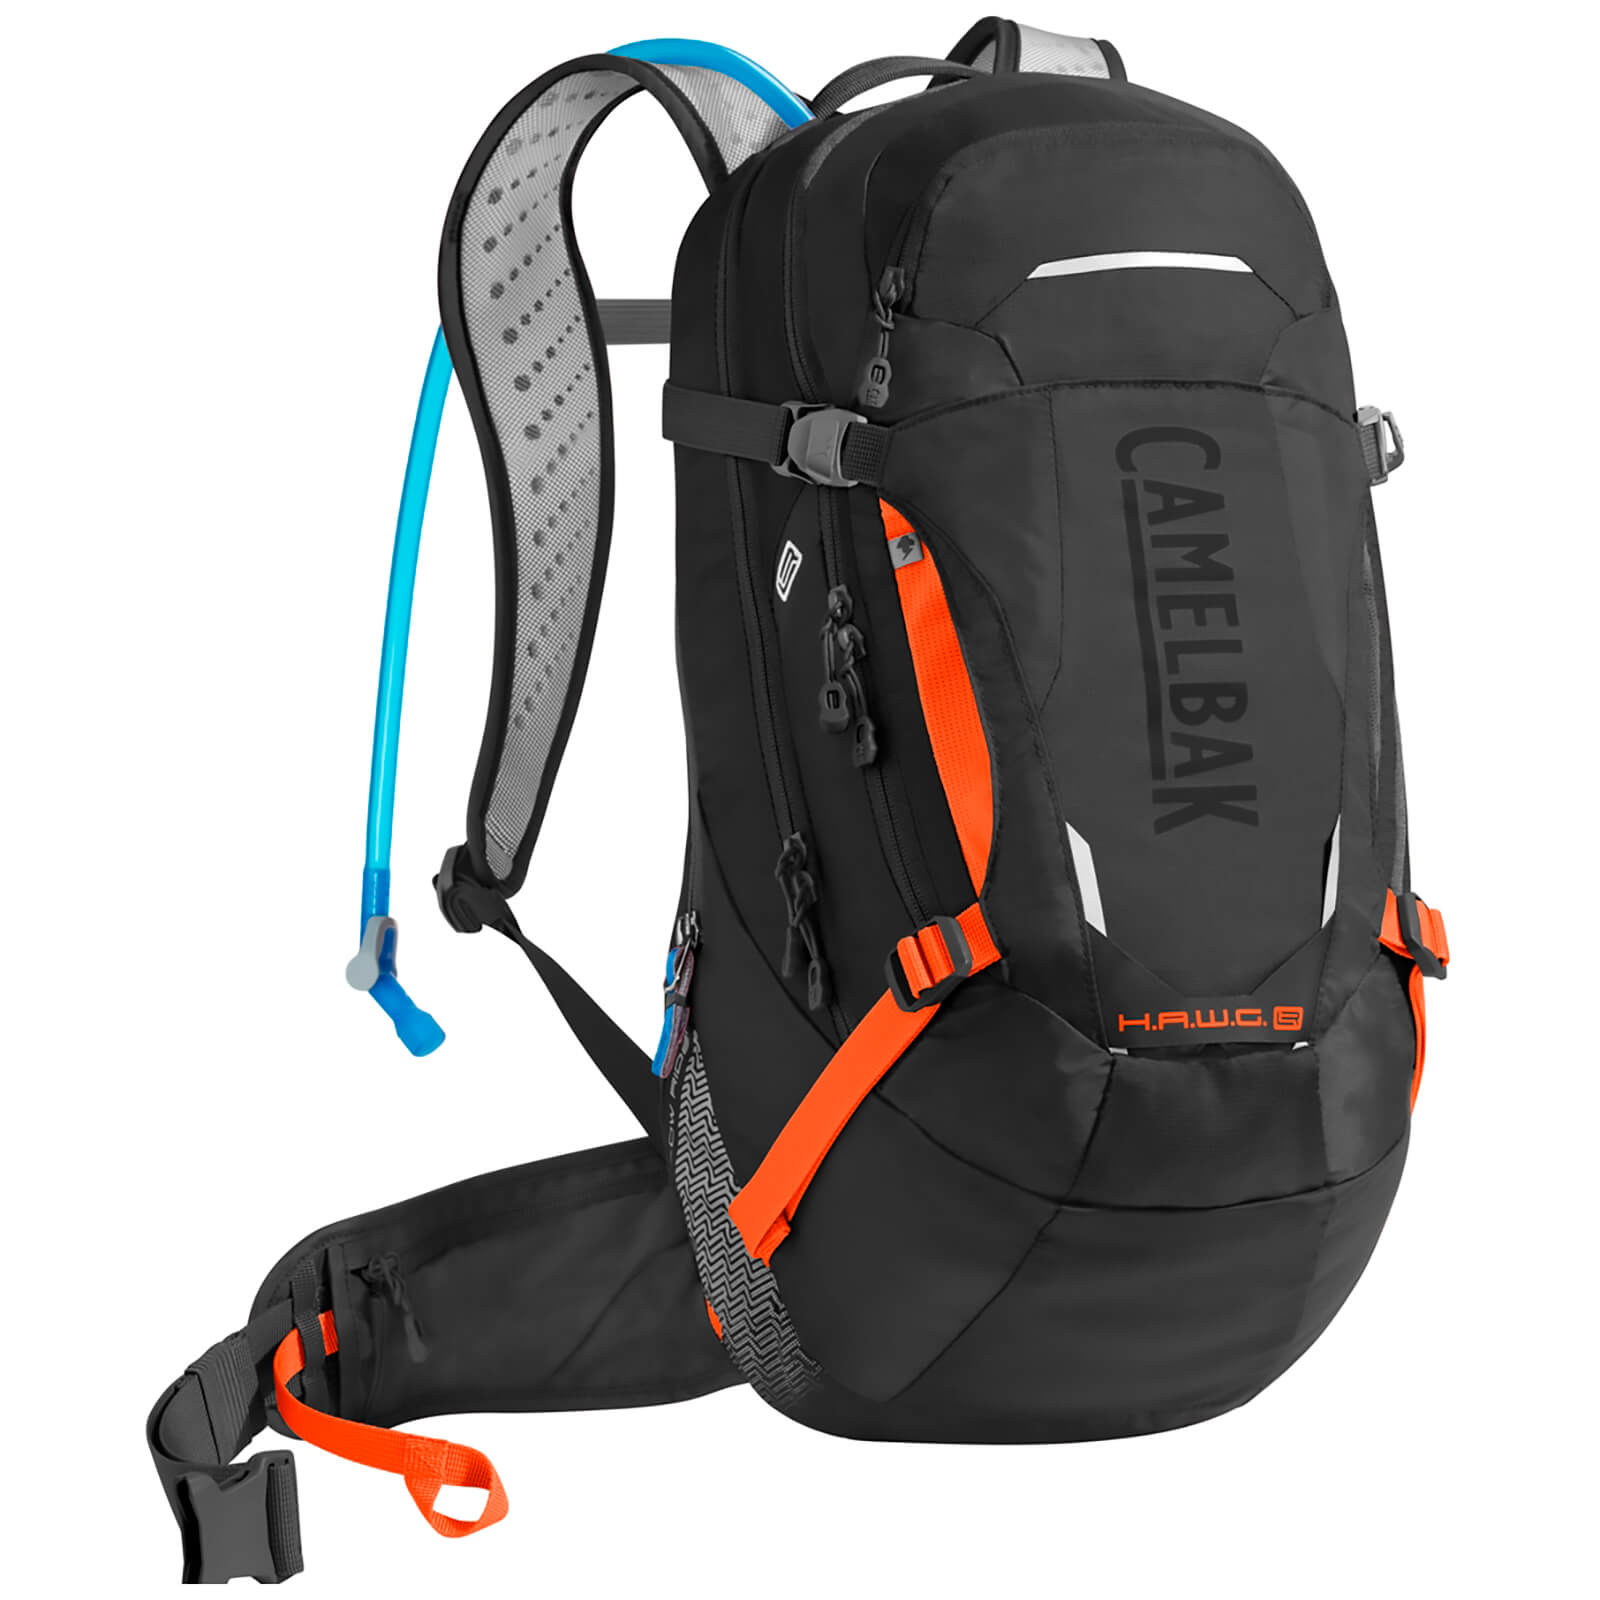 Camelbak Hawg Low Rider Hydration Backpack 20 Litres - Black/Laser Orange